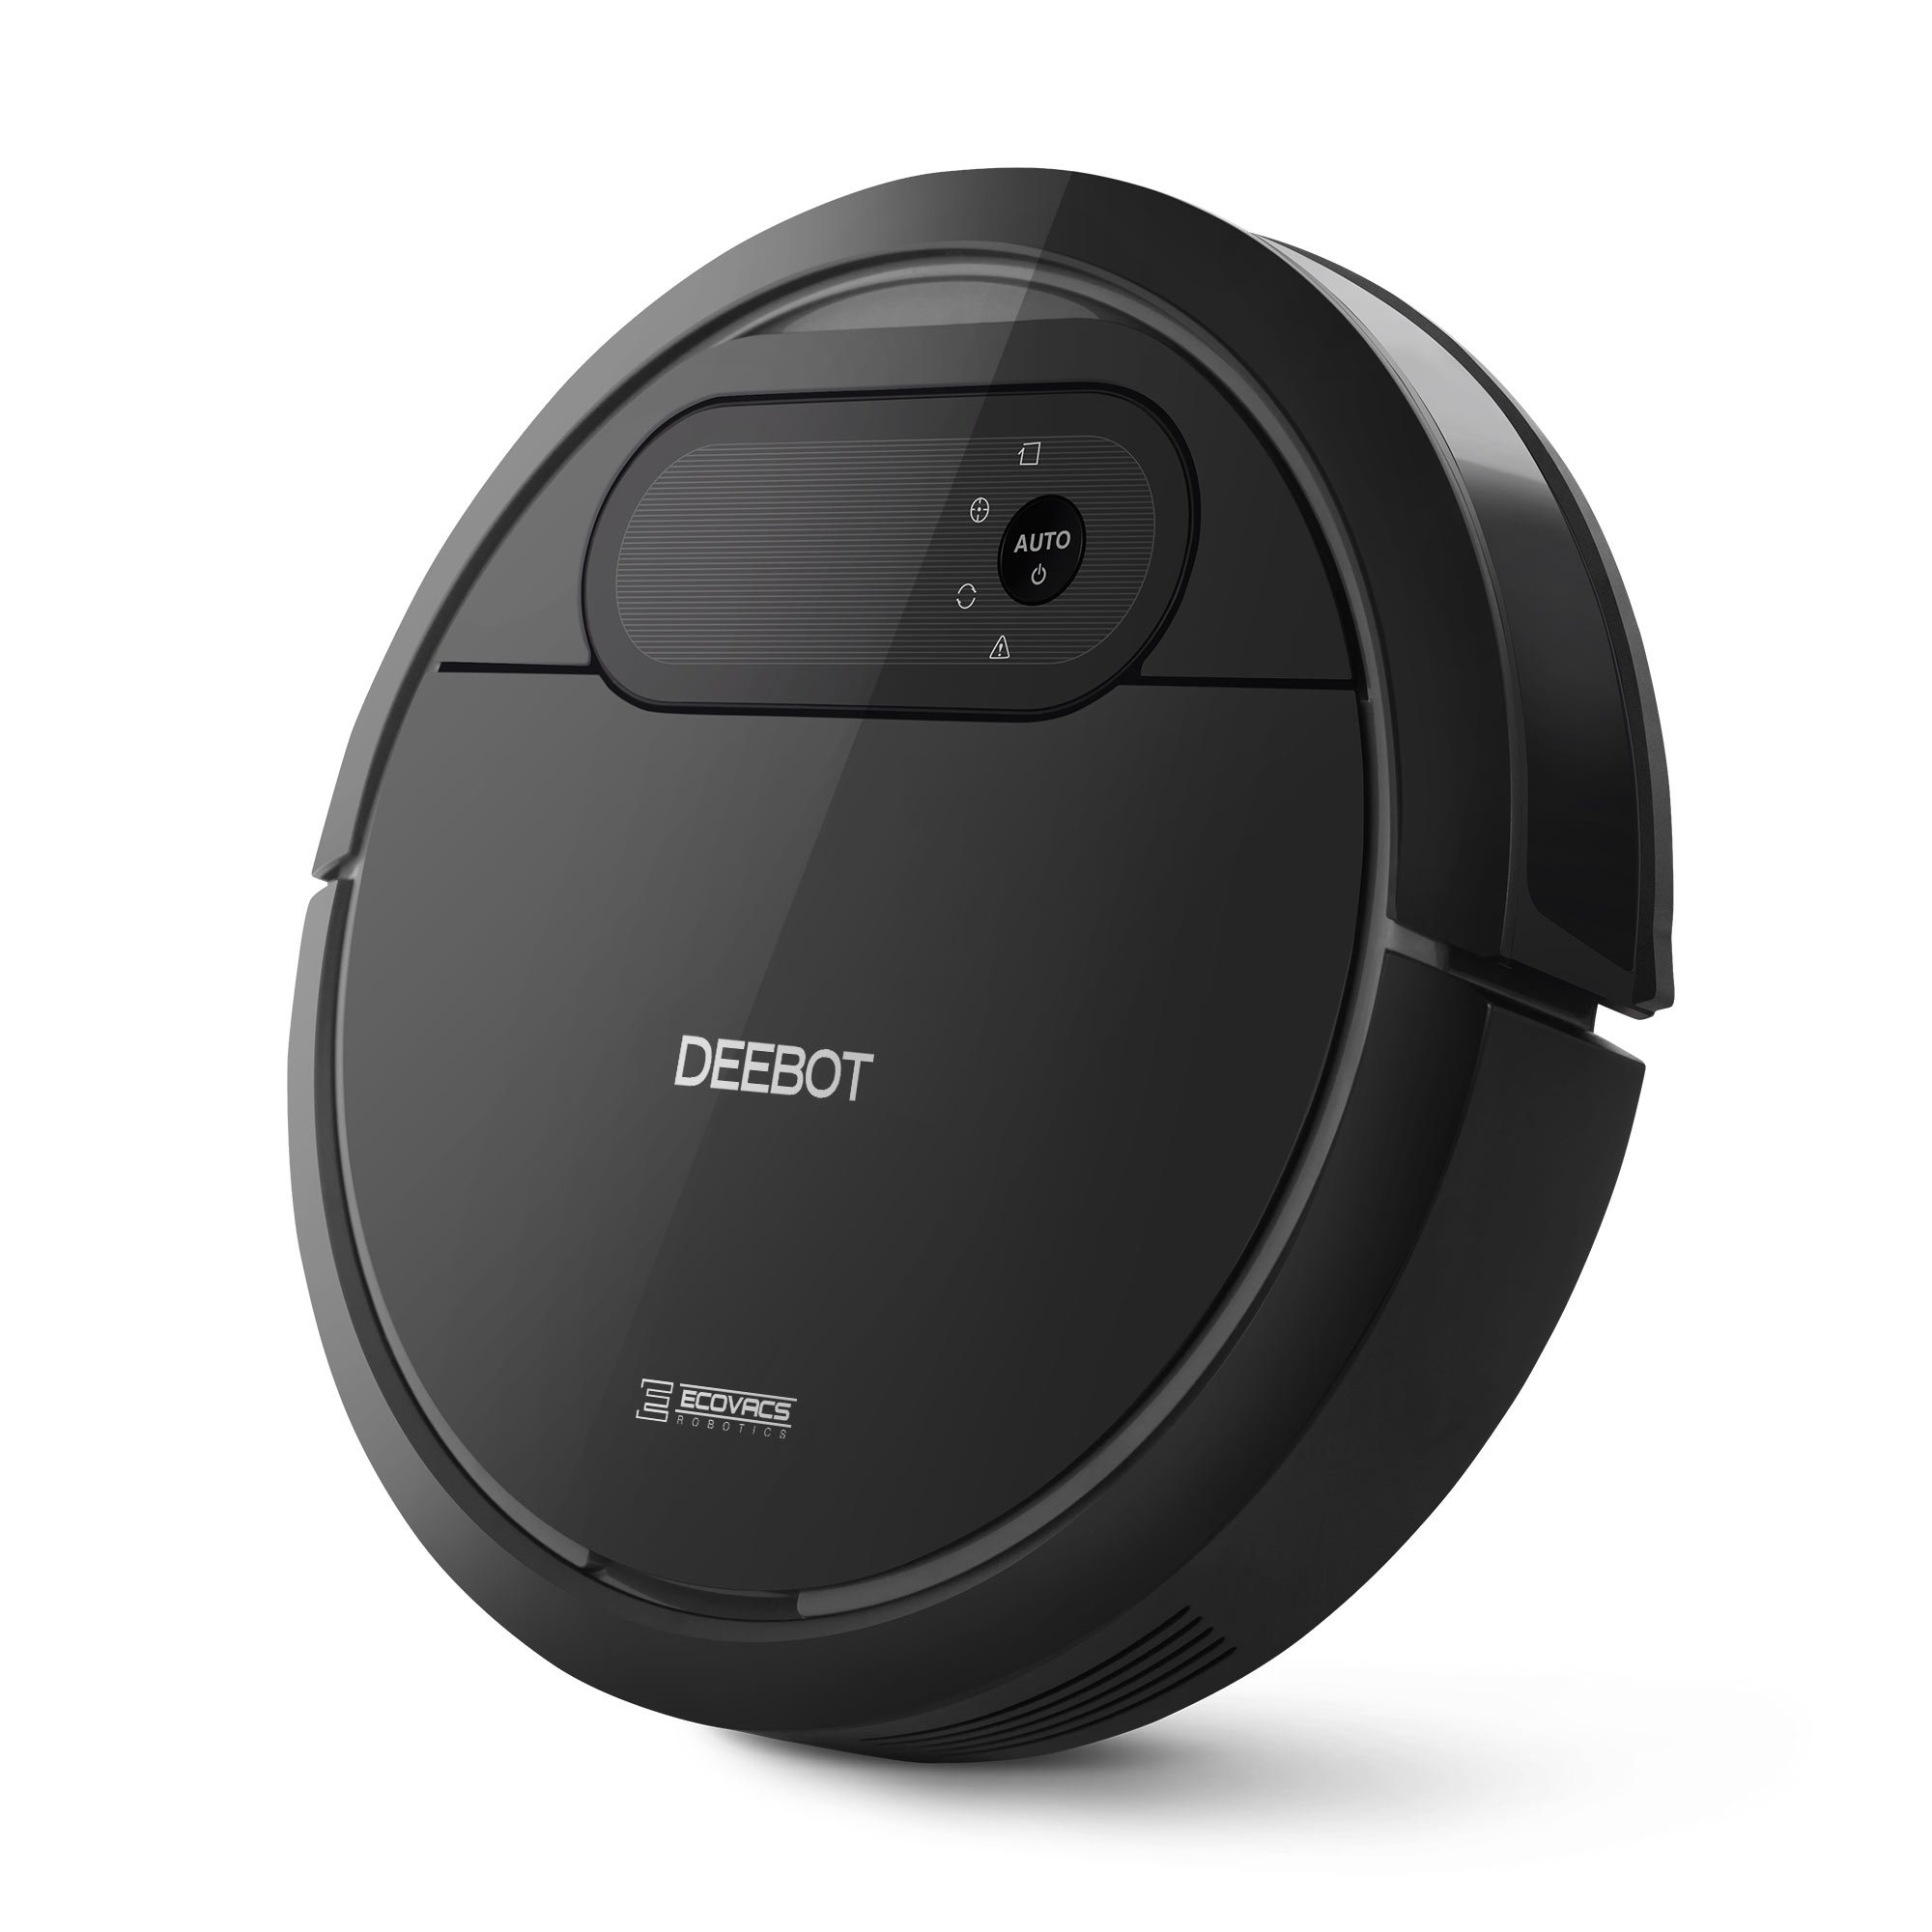 ECOVACS DEEBOT N78 Robotic Vacuum Cleaner, Tangle-free Suction for Pet Hair, hard floor (Renewed) by ECOVACS